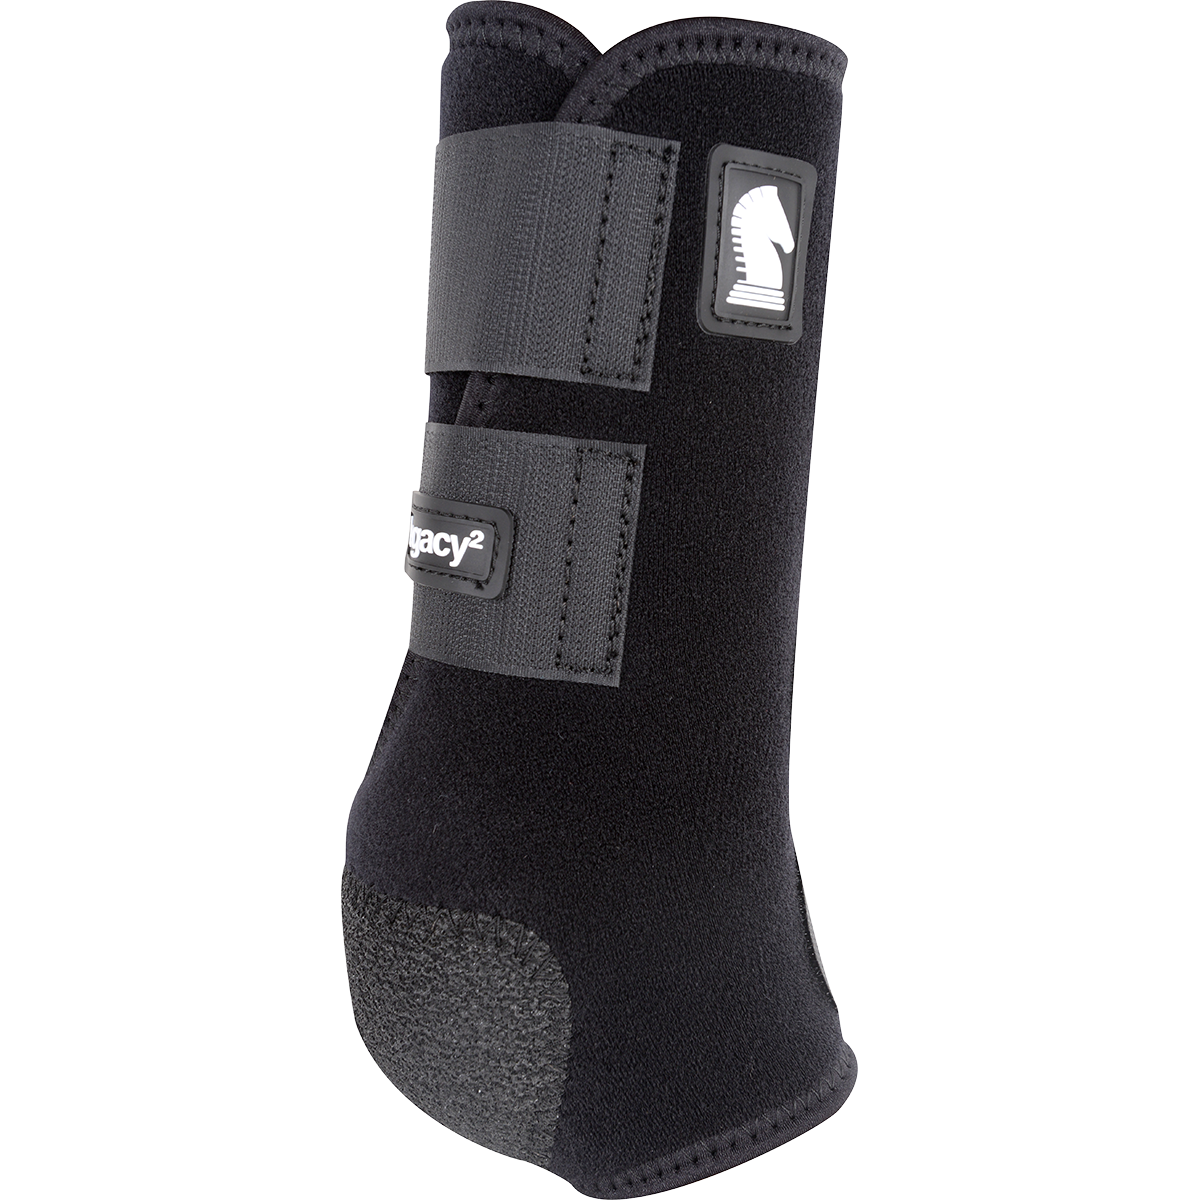 Classic Equine - Legacy 2 Boots Hinds Tack - Leg Protection - Splint Boots Classic Equine Teskeys